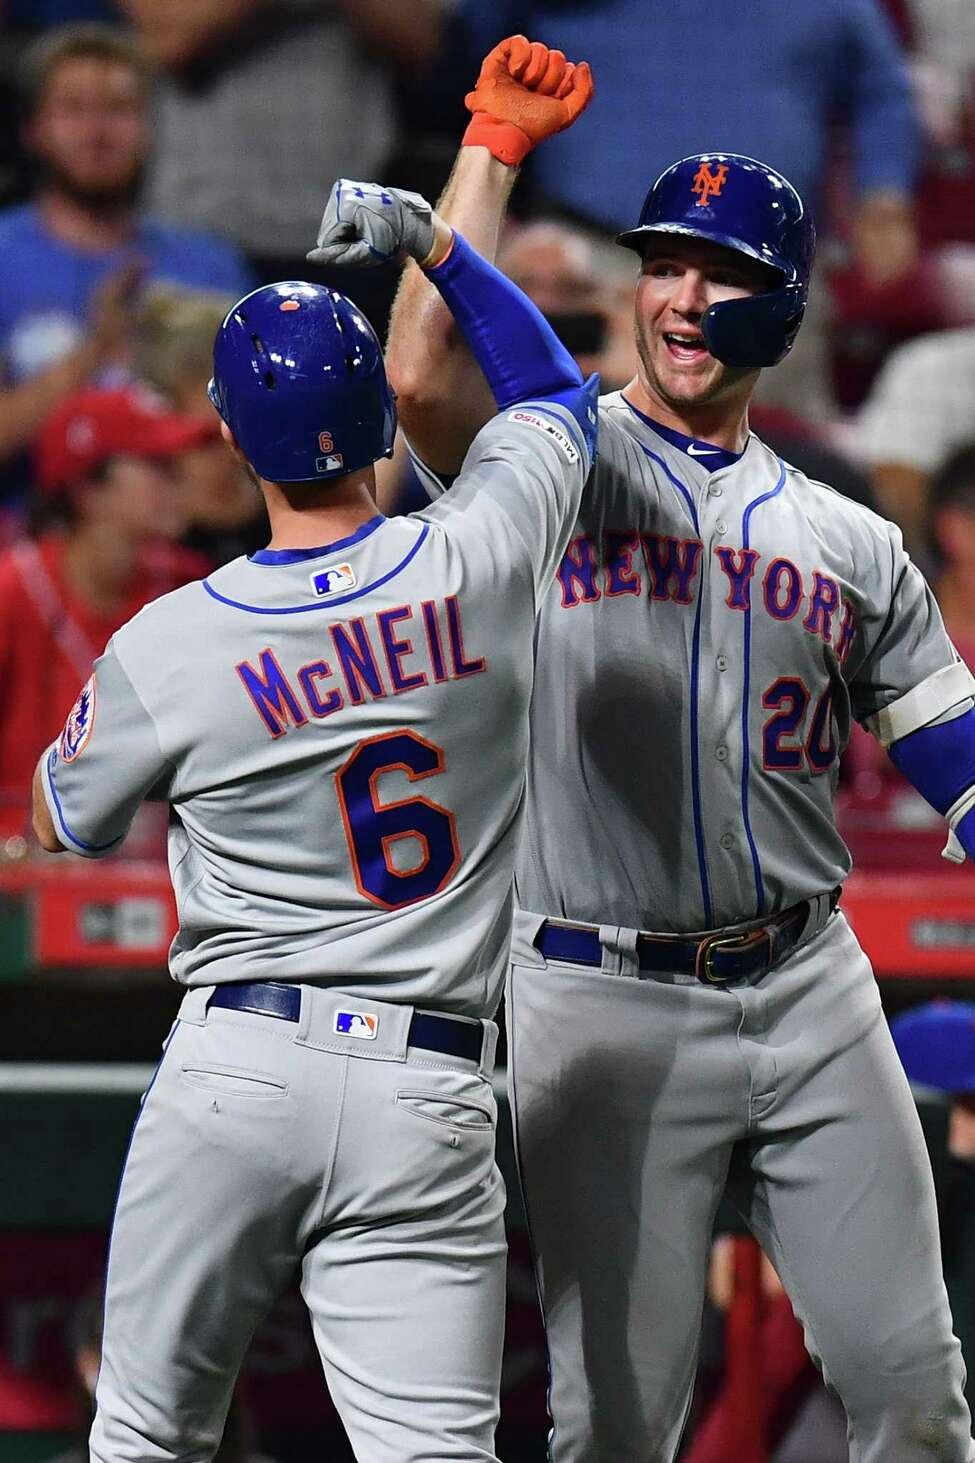 CINCINNATI, OH - SEPTEMBER 20: Pete Alonso #20 of the New York Mets celebrates with Jeff McNeil #6 of the New York Mets after McNeil hit a home run in the sixth inning against the Cincinnati Reds at Great American Ball Park on September 20, 2019 in Cincinnati, Ohio. New York defeated Cincinnati 8-1. (Photo by Jamie Sabau/Getty Images)